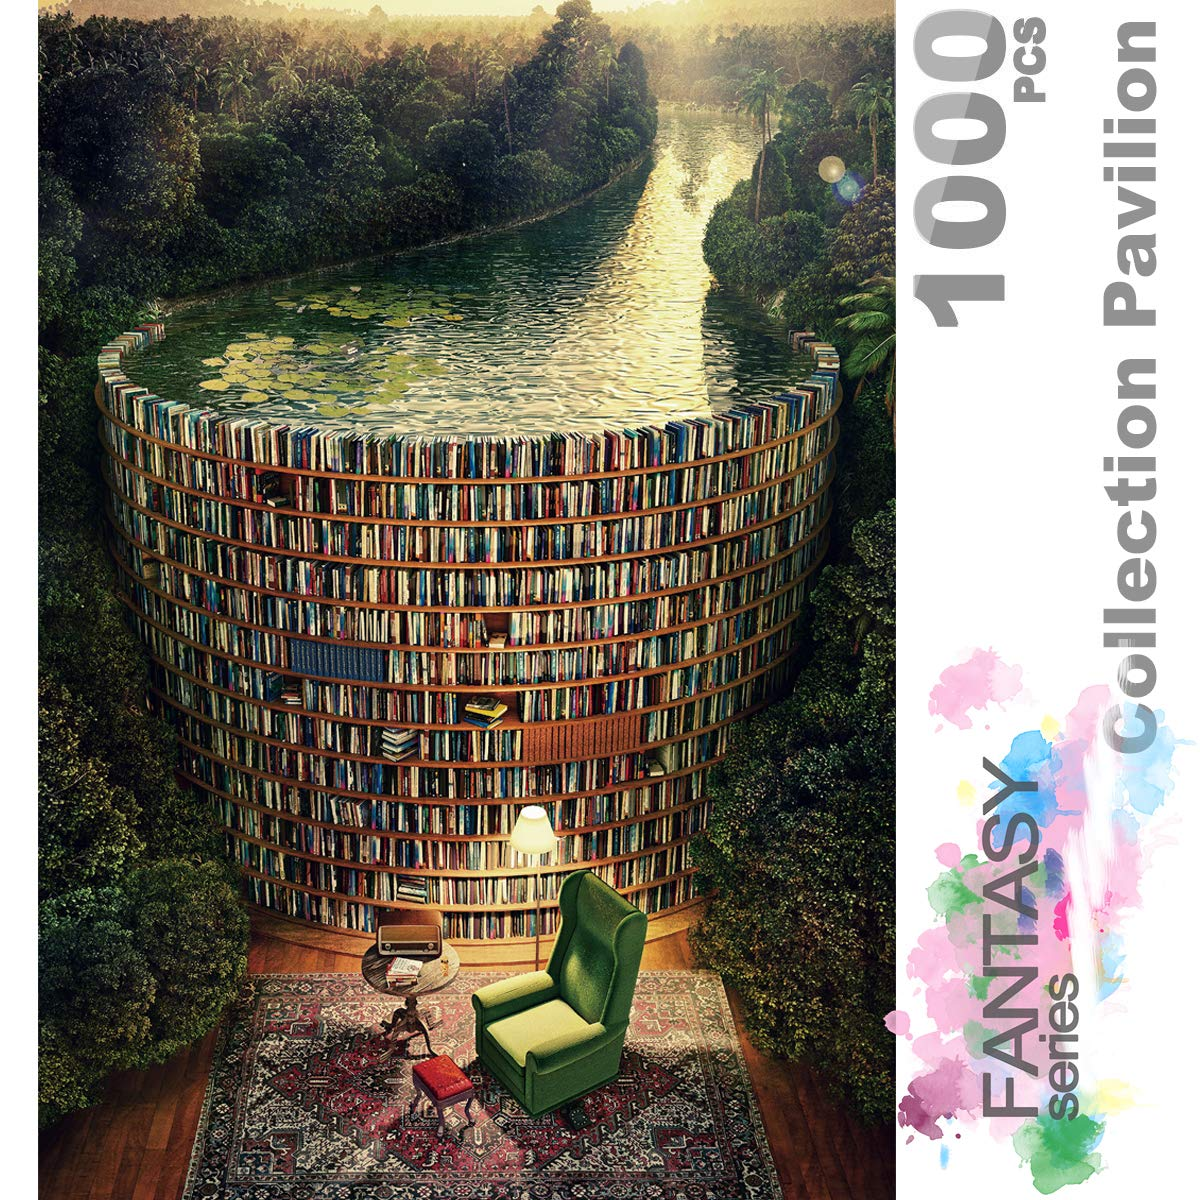 Ingooood- Jigsaw Puzzles 1000 Pieces for Adults- Fantasy Series- Collection Pavilion_IG-0292 Entertainment Toys for Adult Special Graduation or Birthday Gift Home Decor by Ingooood